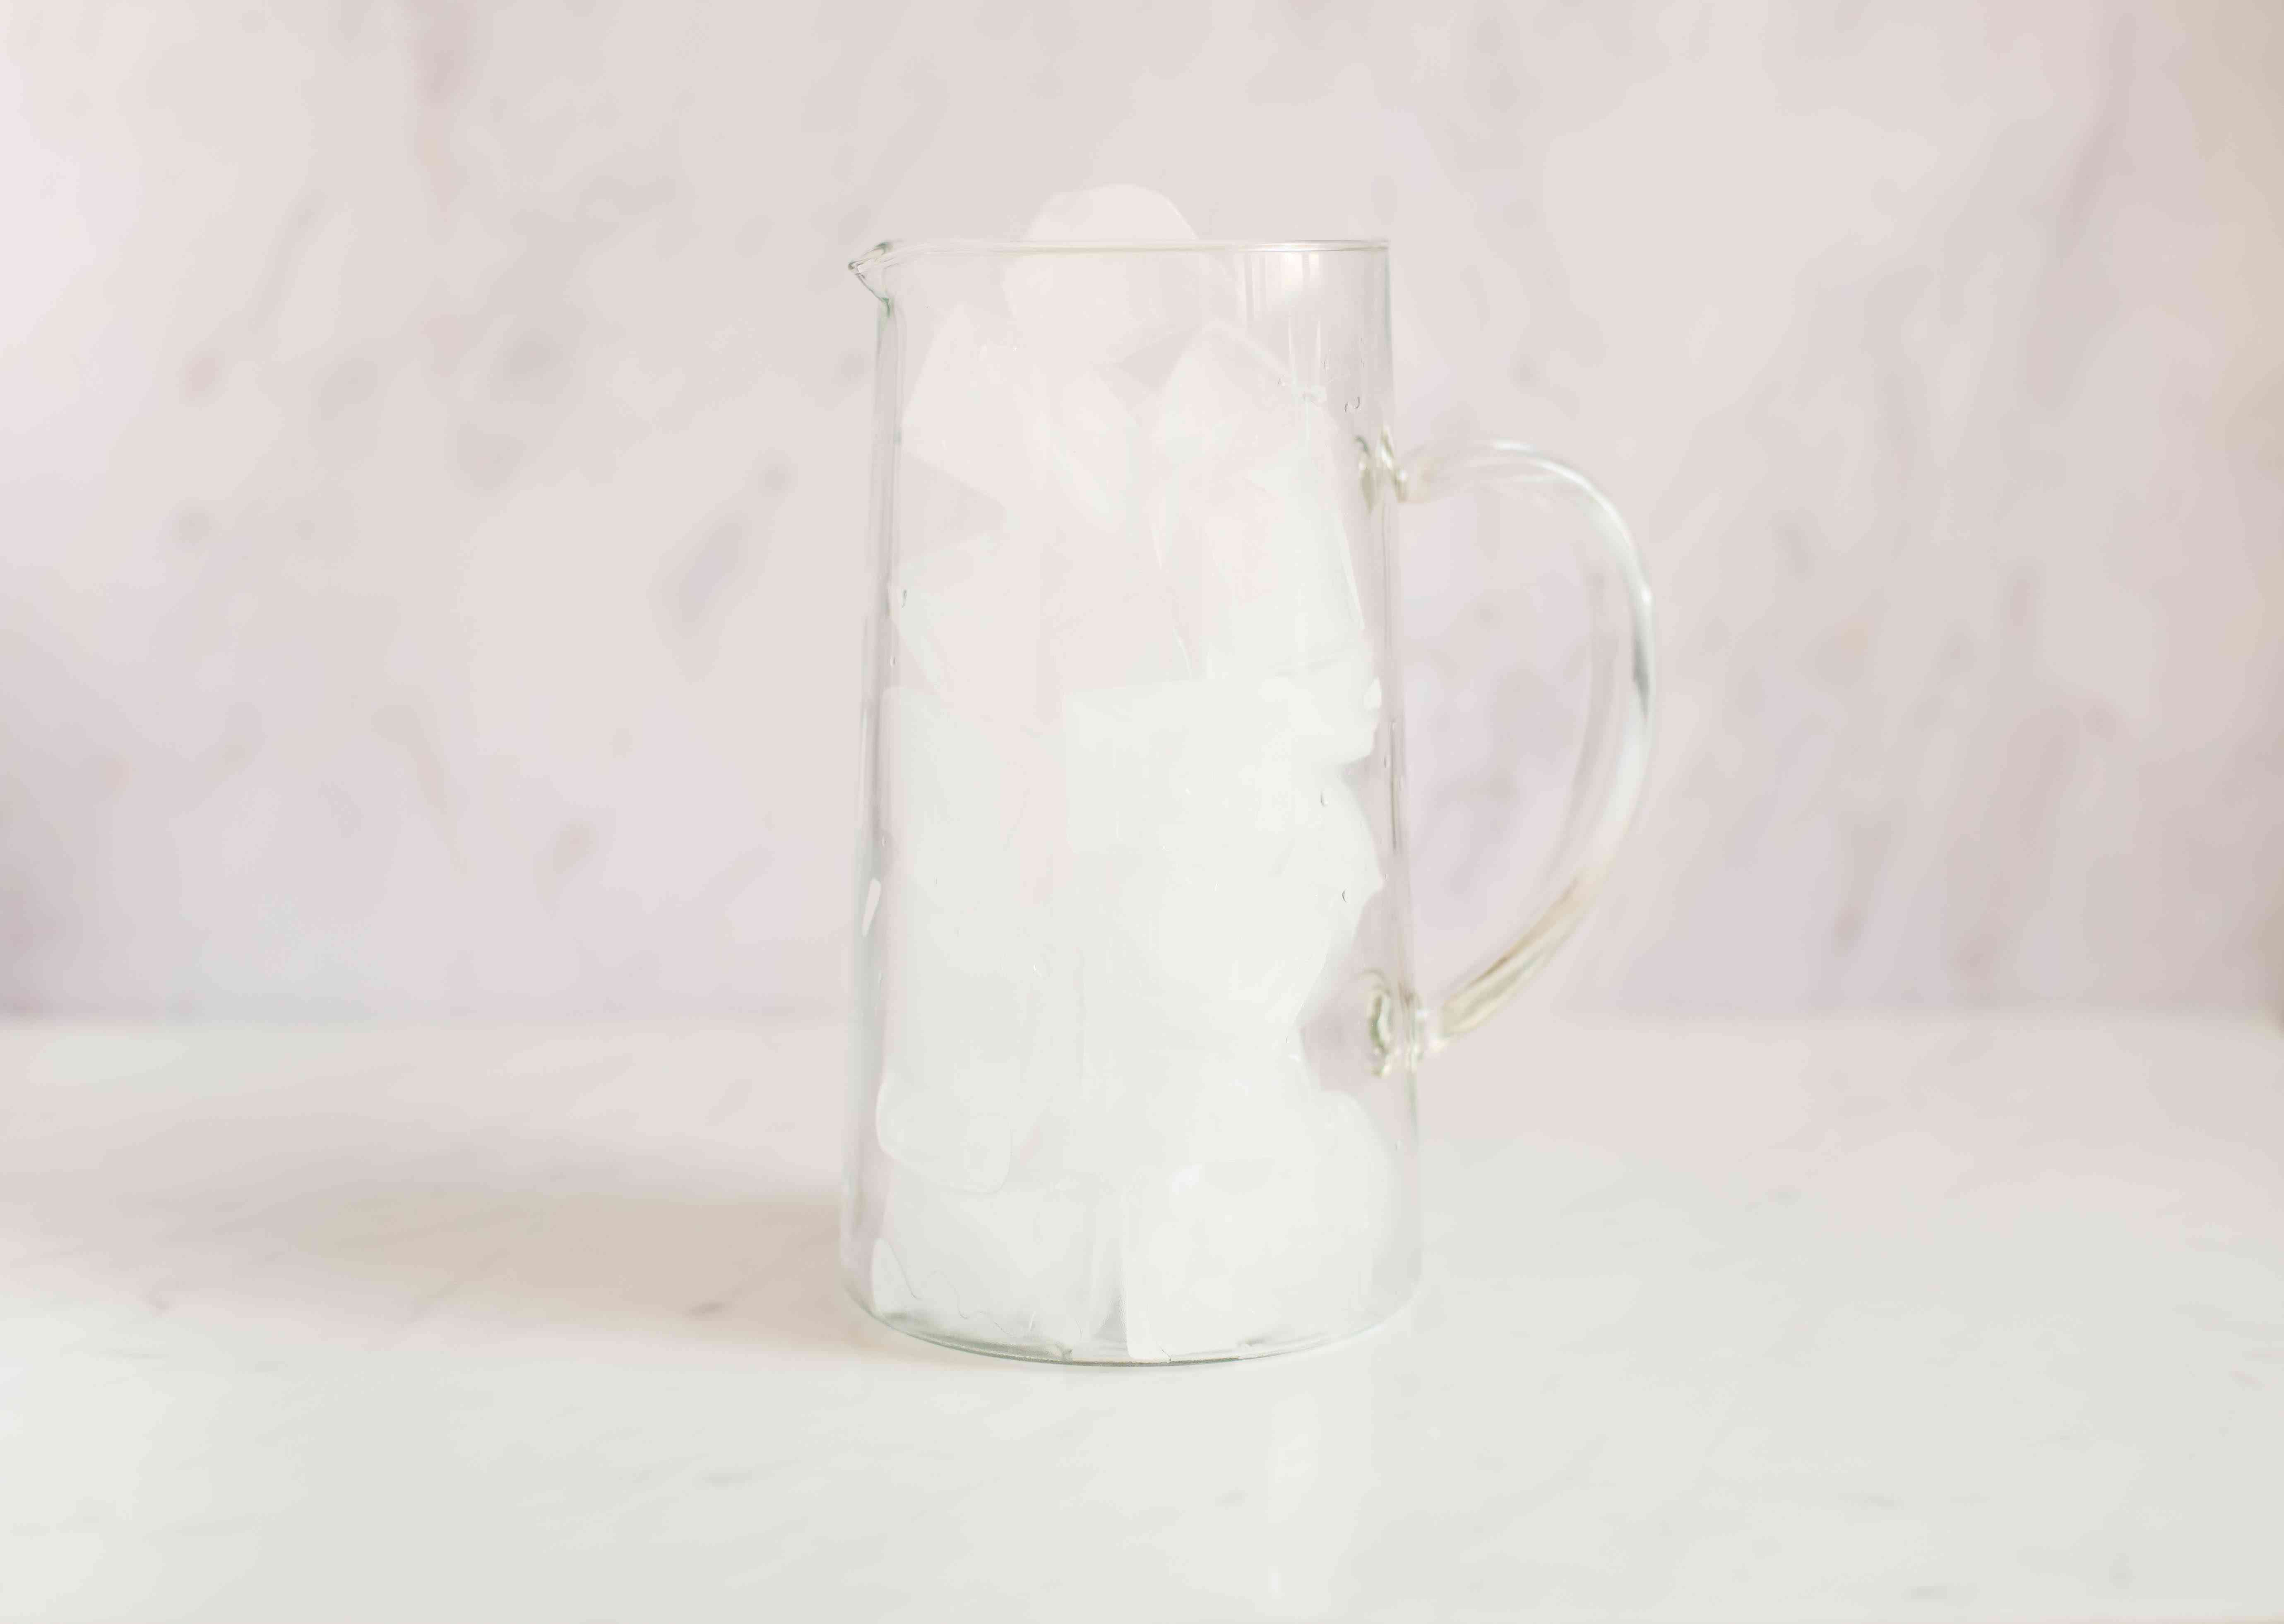 Pitcher filled with ice